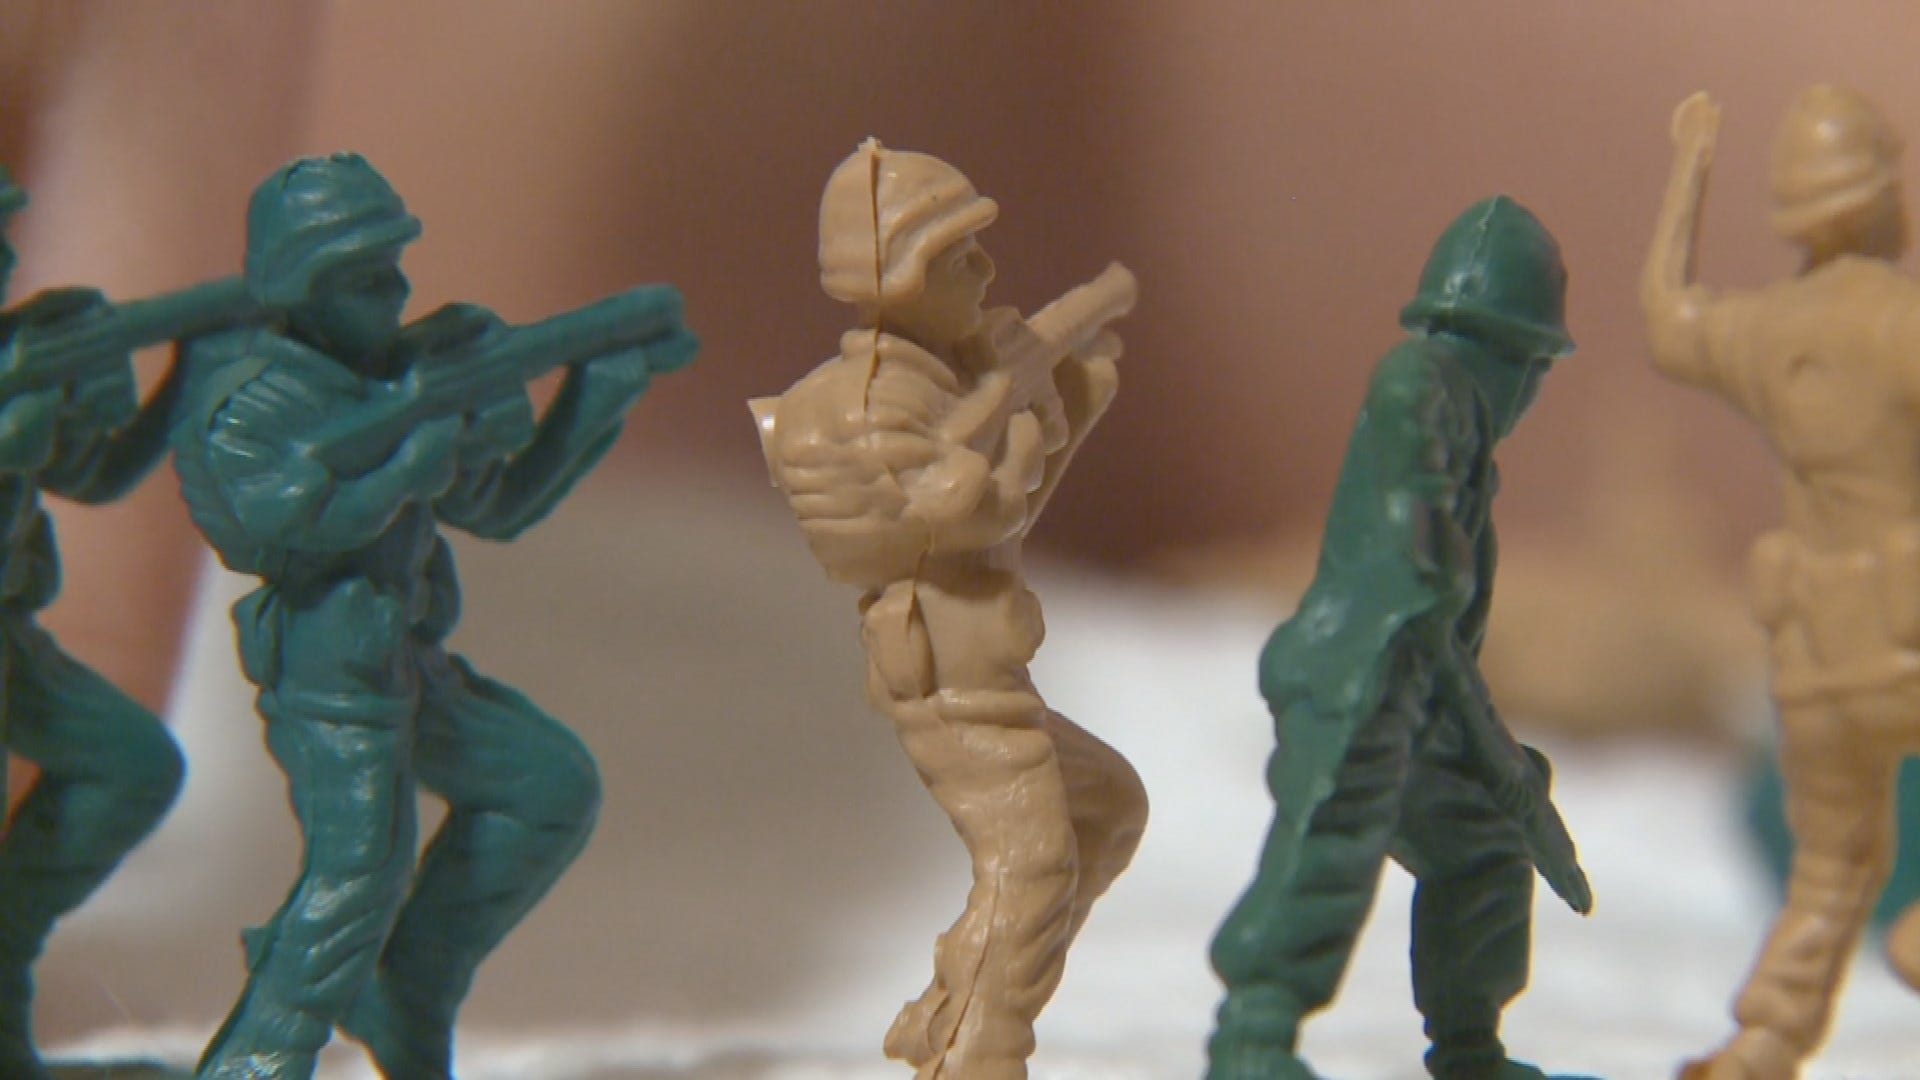 6-Year-Old Girl Writes Toy Company Asking For Female Army Figures